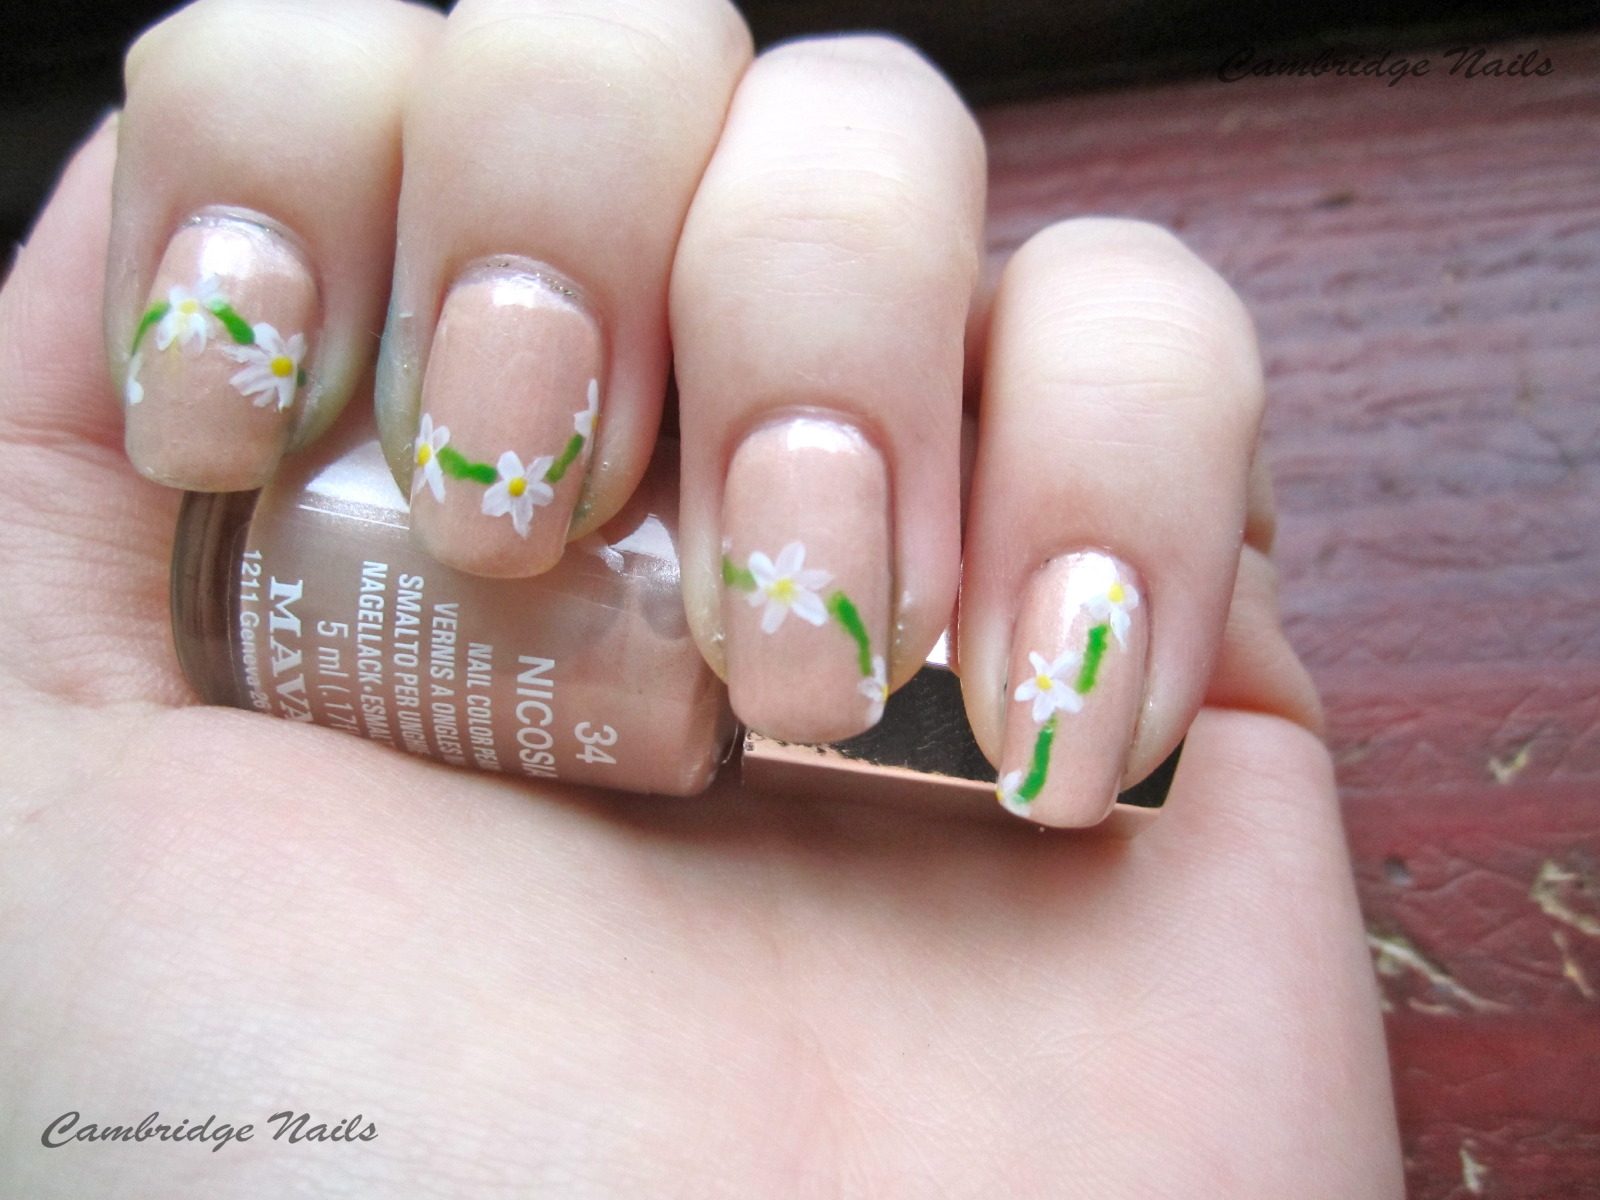 Cambridge Nails: Daisy chain nails